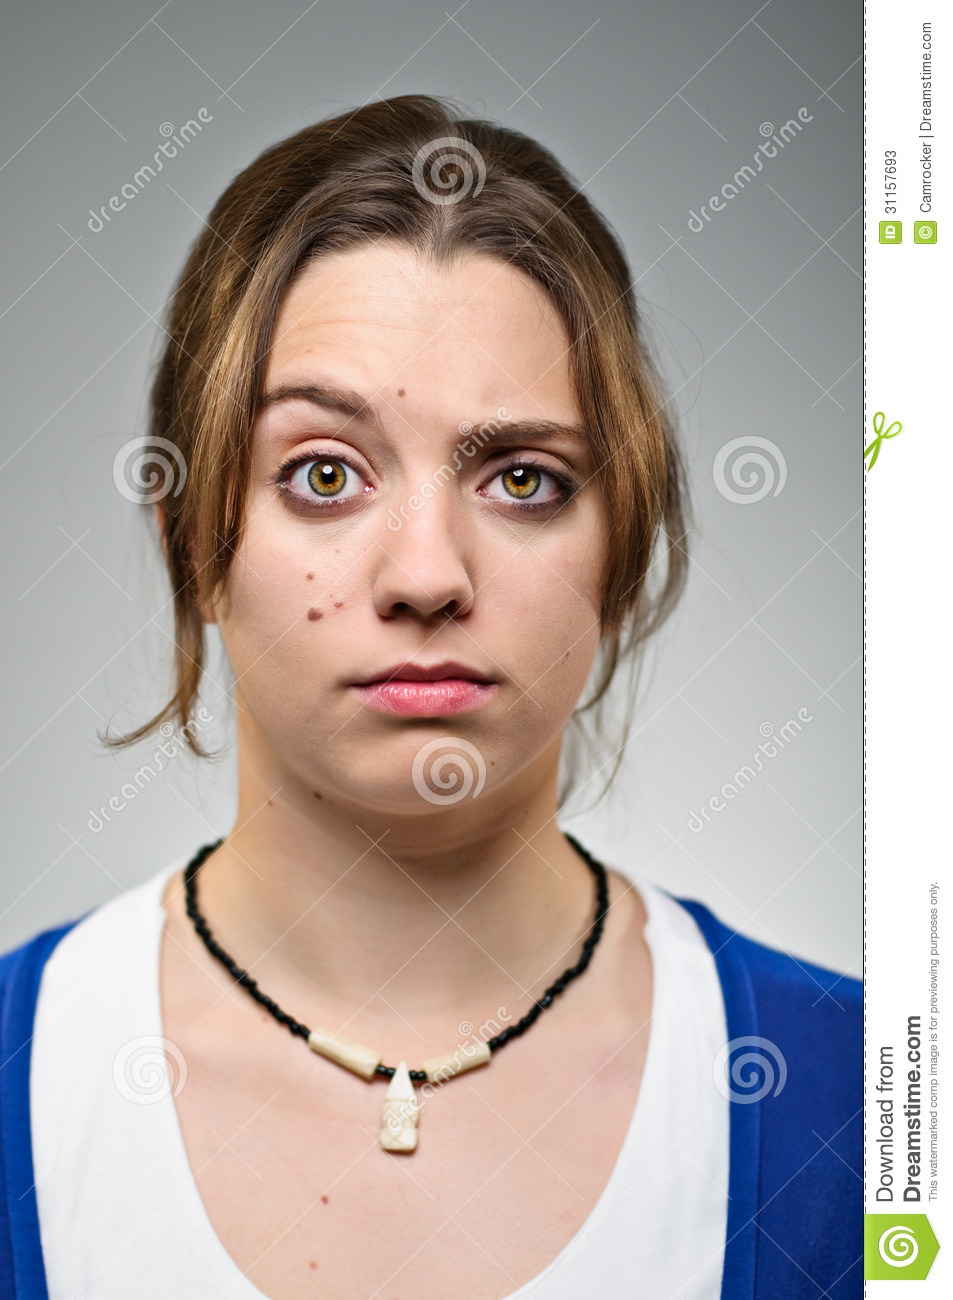 Young Caucasian Woman Raised Eyebrow Portrait Stock Image Image Of